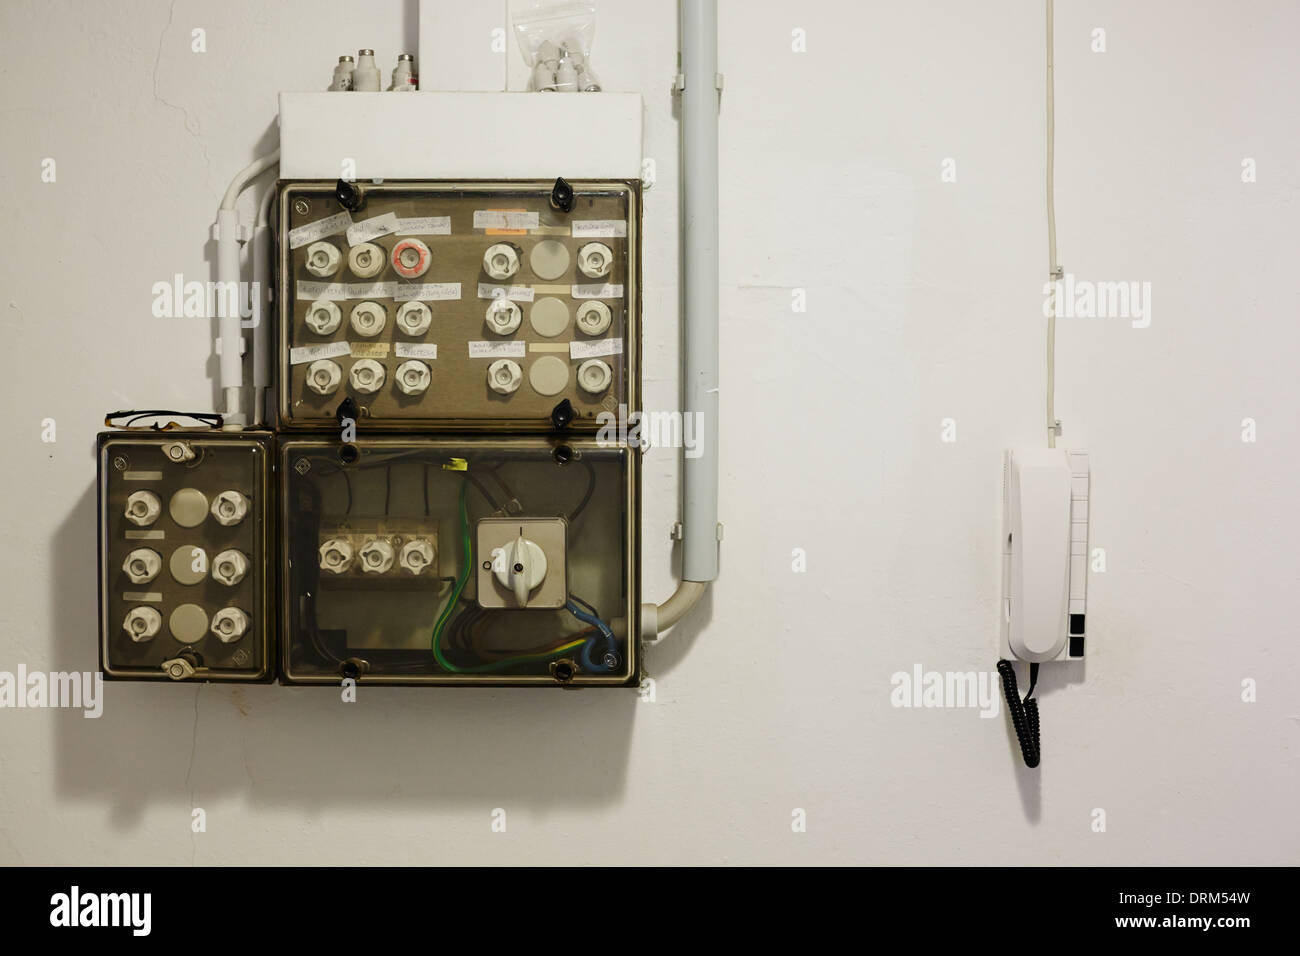 old fuse box - stock image